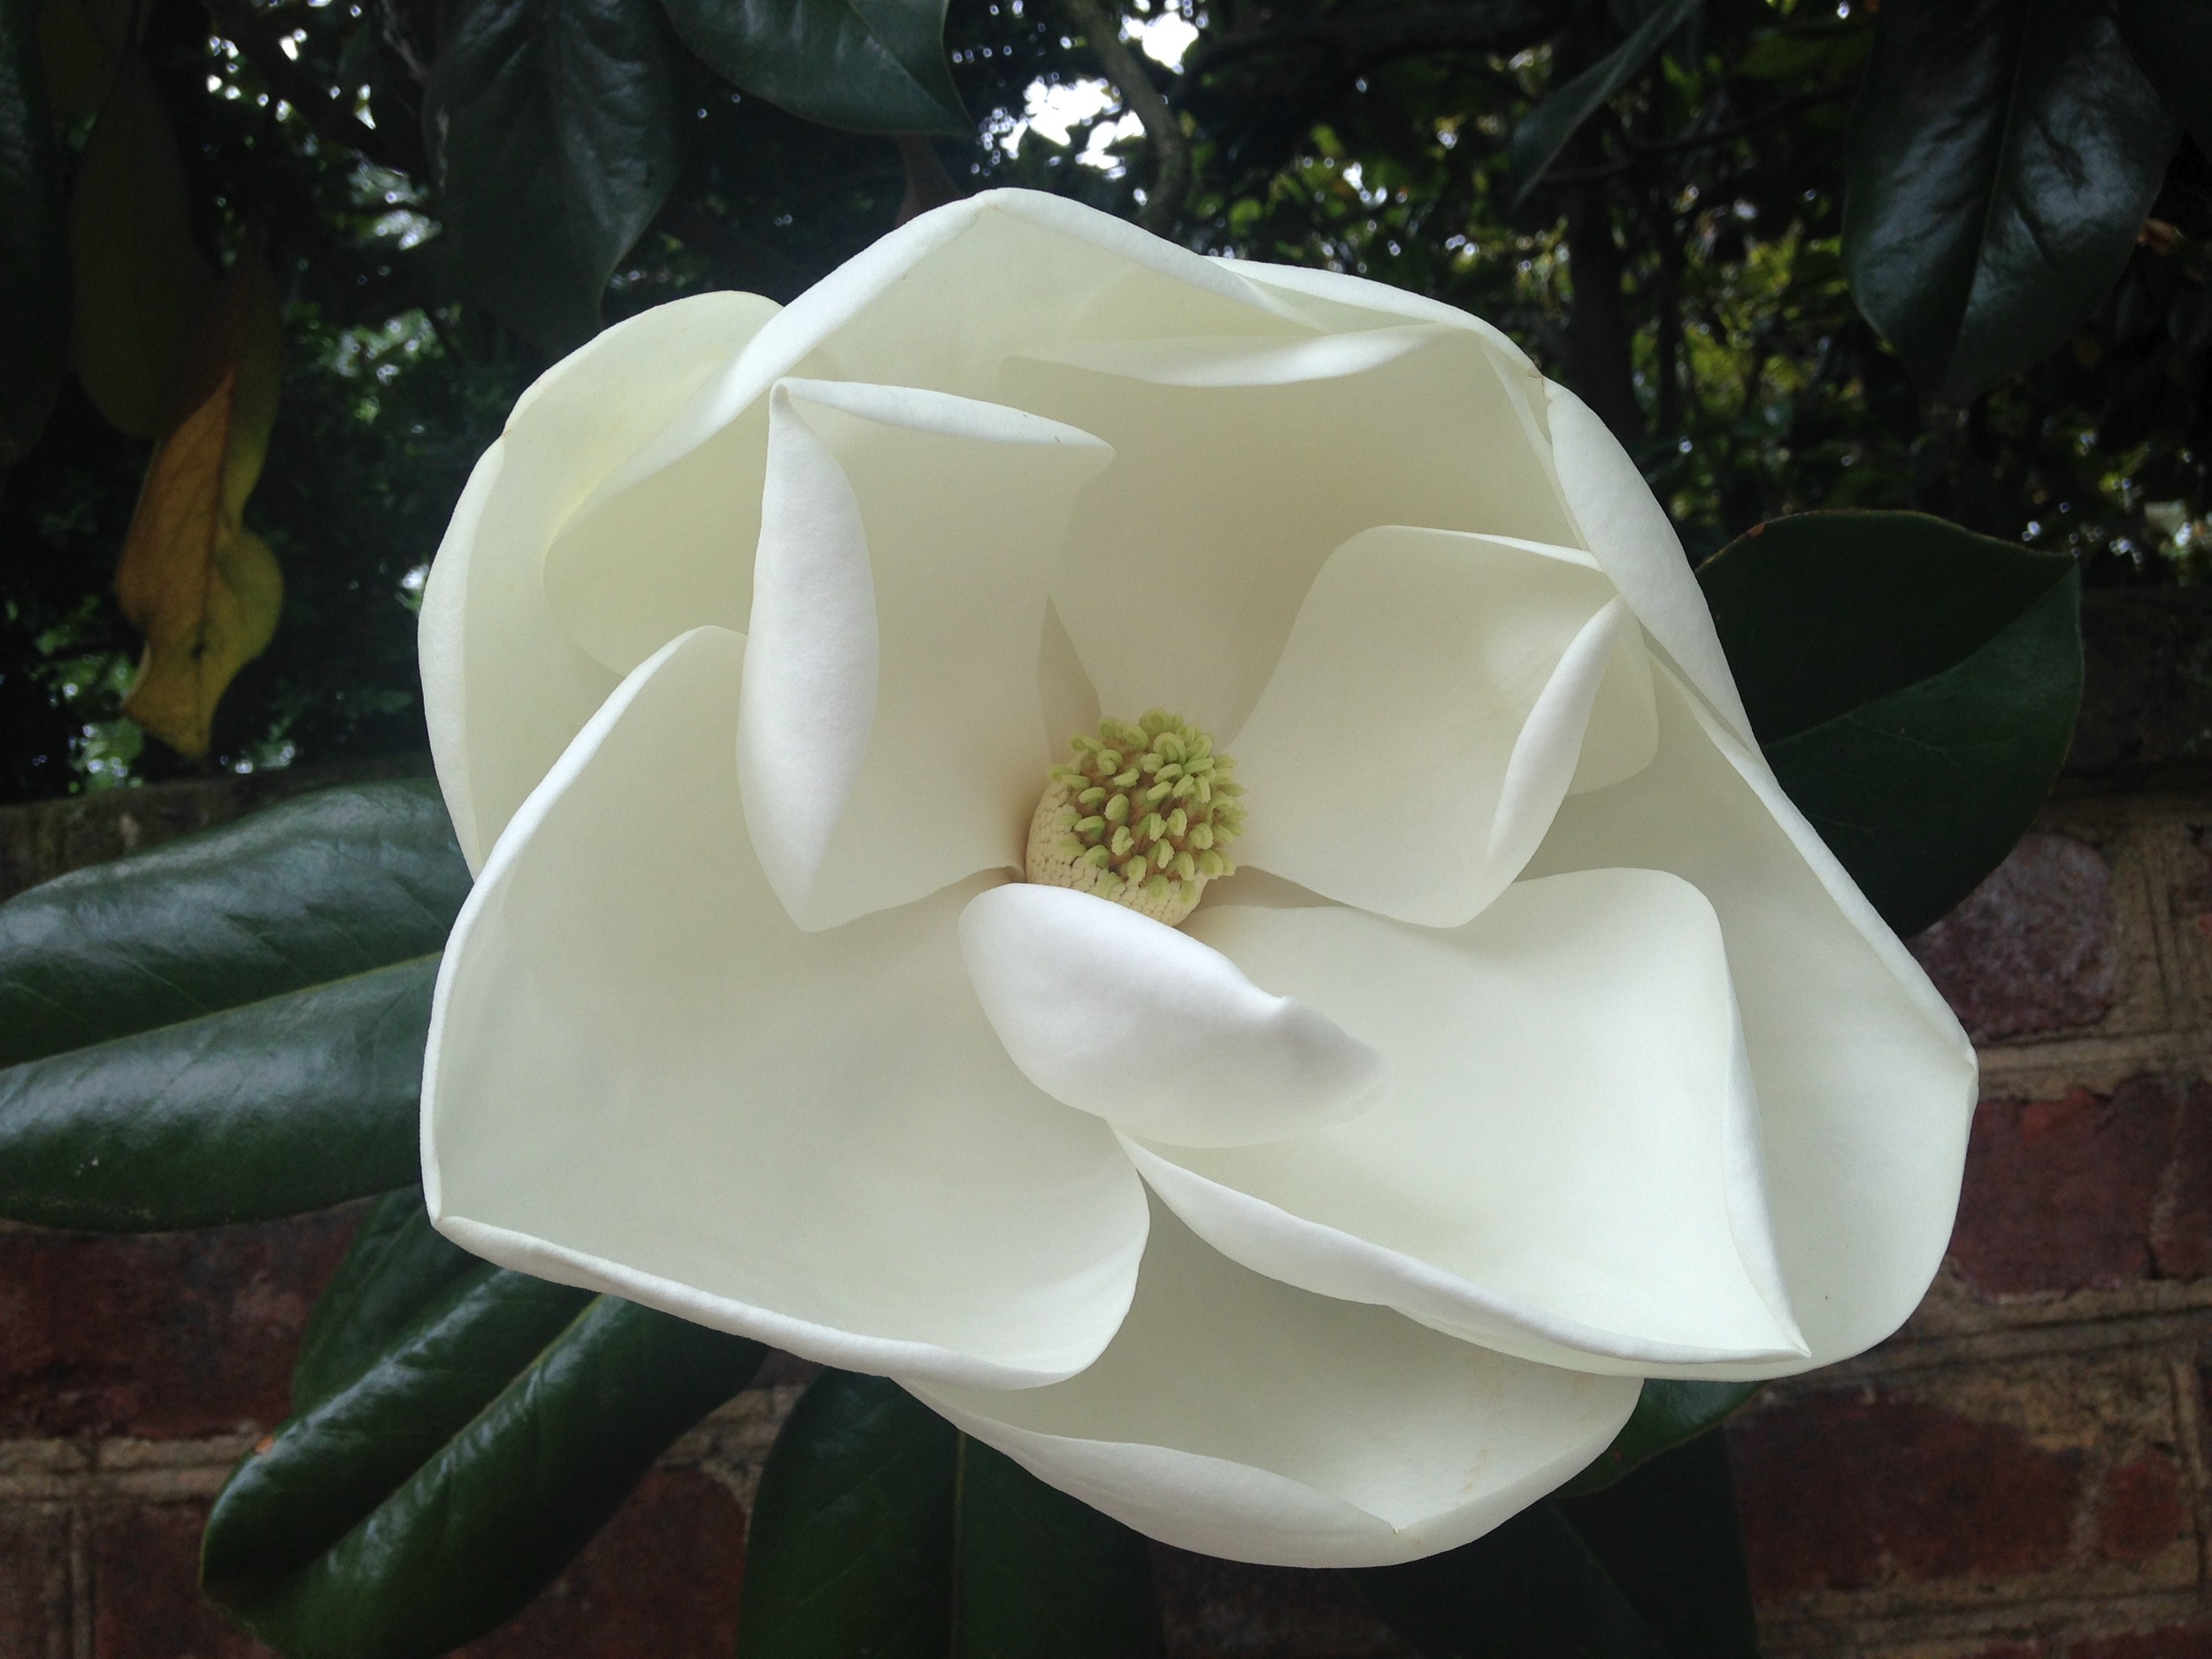 A MAGNOLIA IN FULL BLOOM ON THE UNIVERSITY GROUNDS